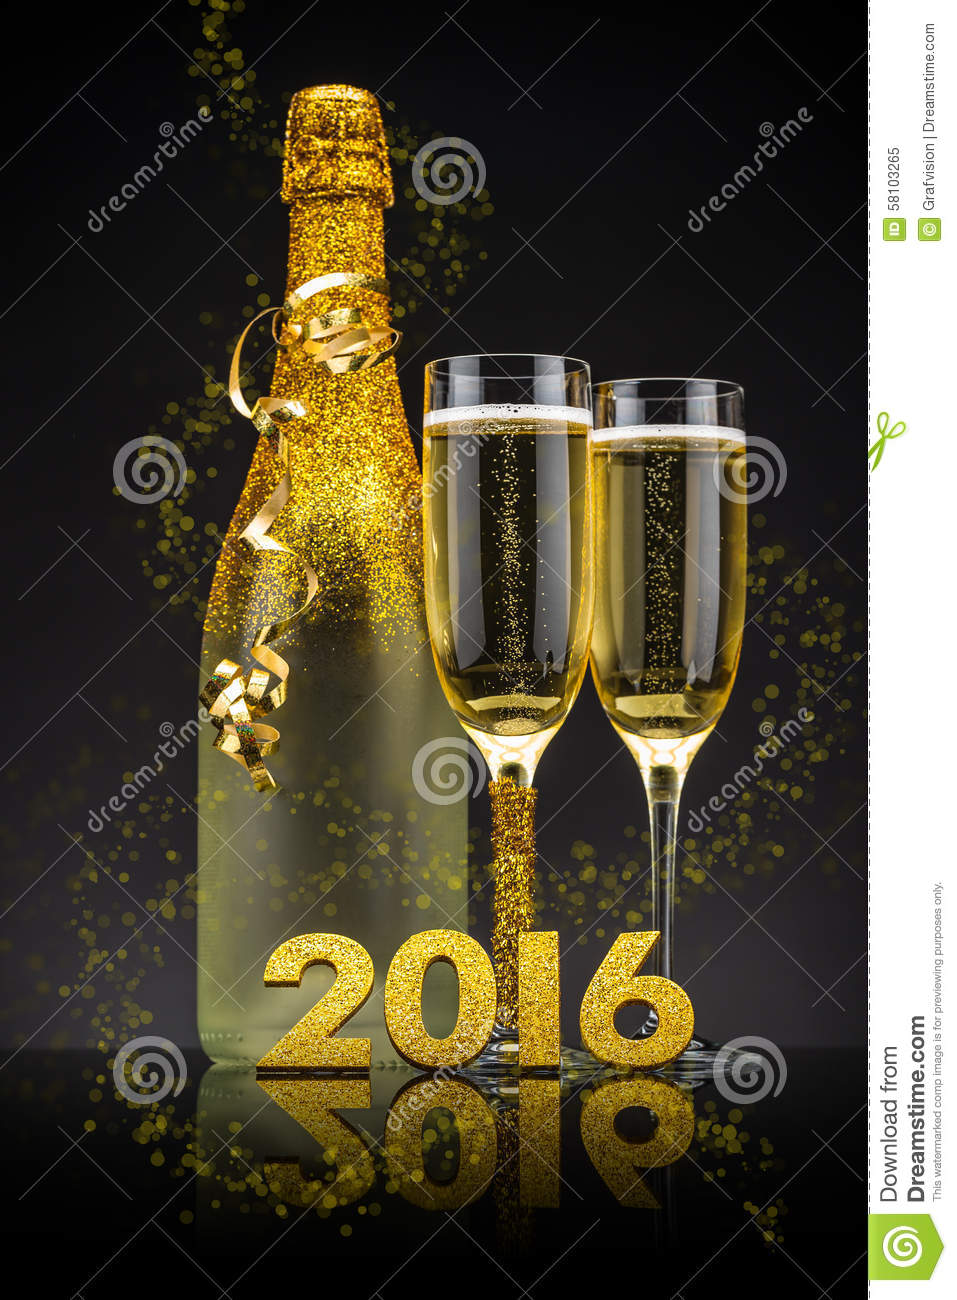 2016 New Years Eve Stock Photo - Image: 58103265